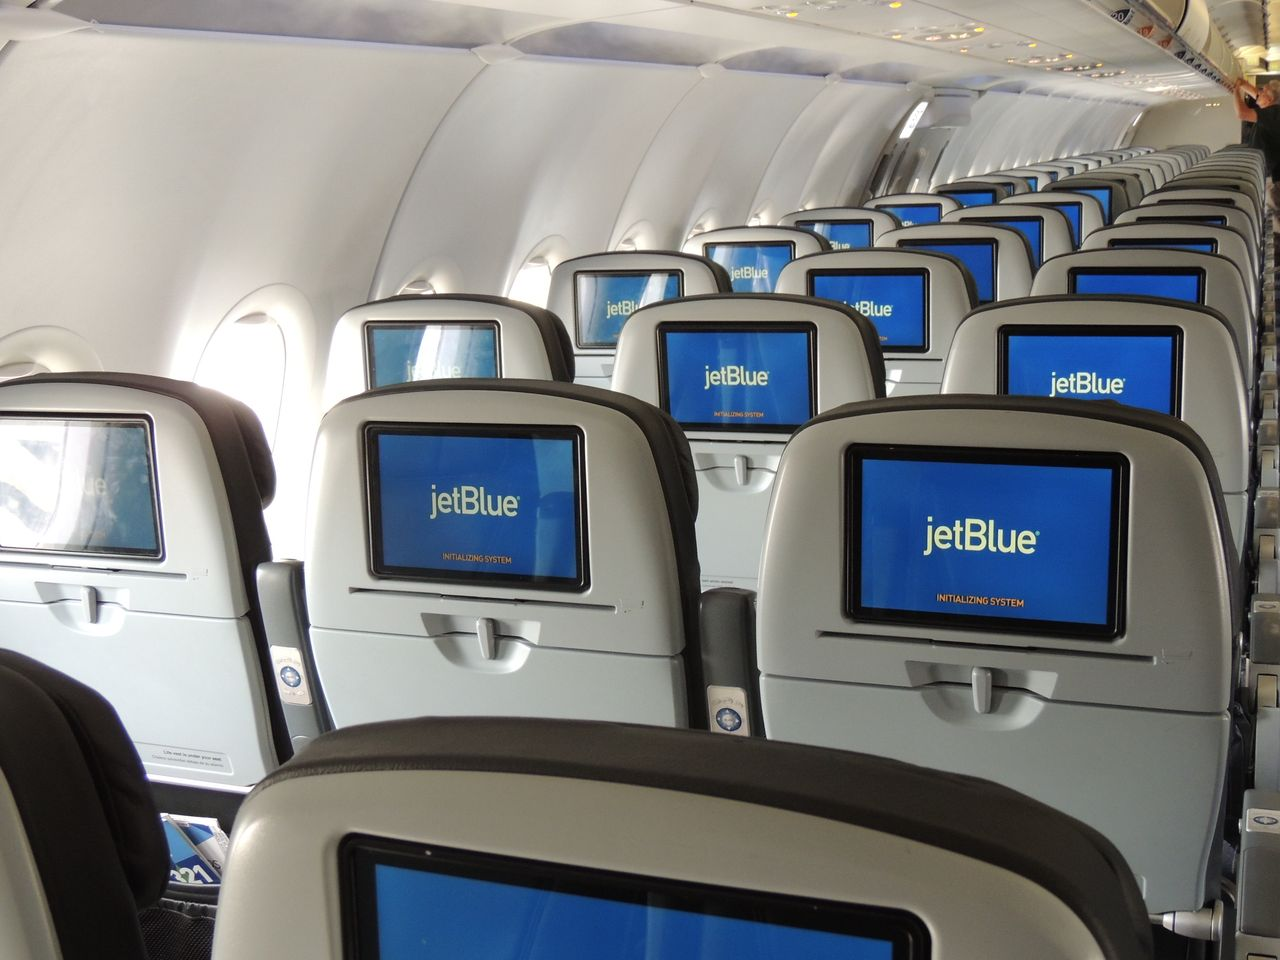 Airbus A321 200 Jetblue Airways Economy Cabin Interior With Hd Ife